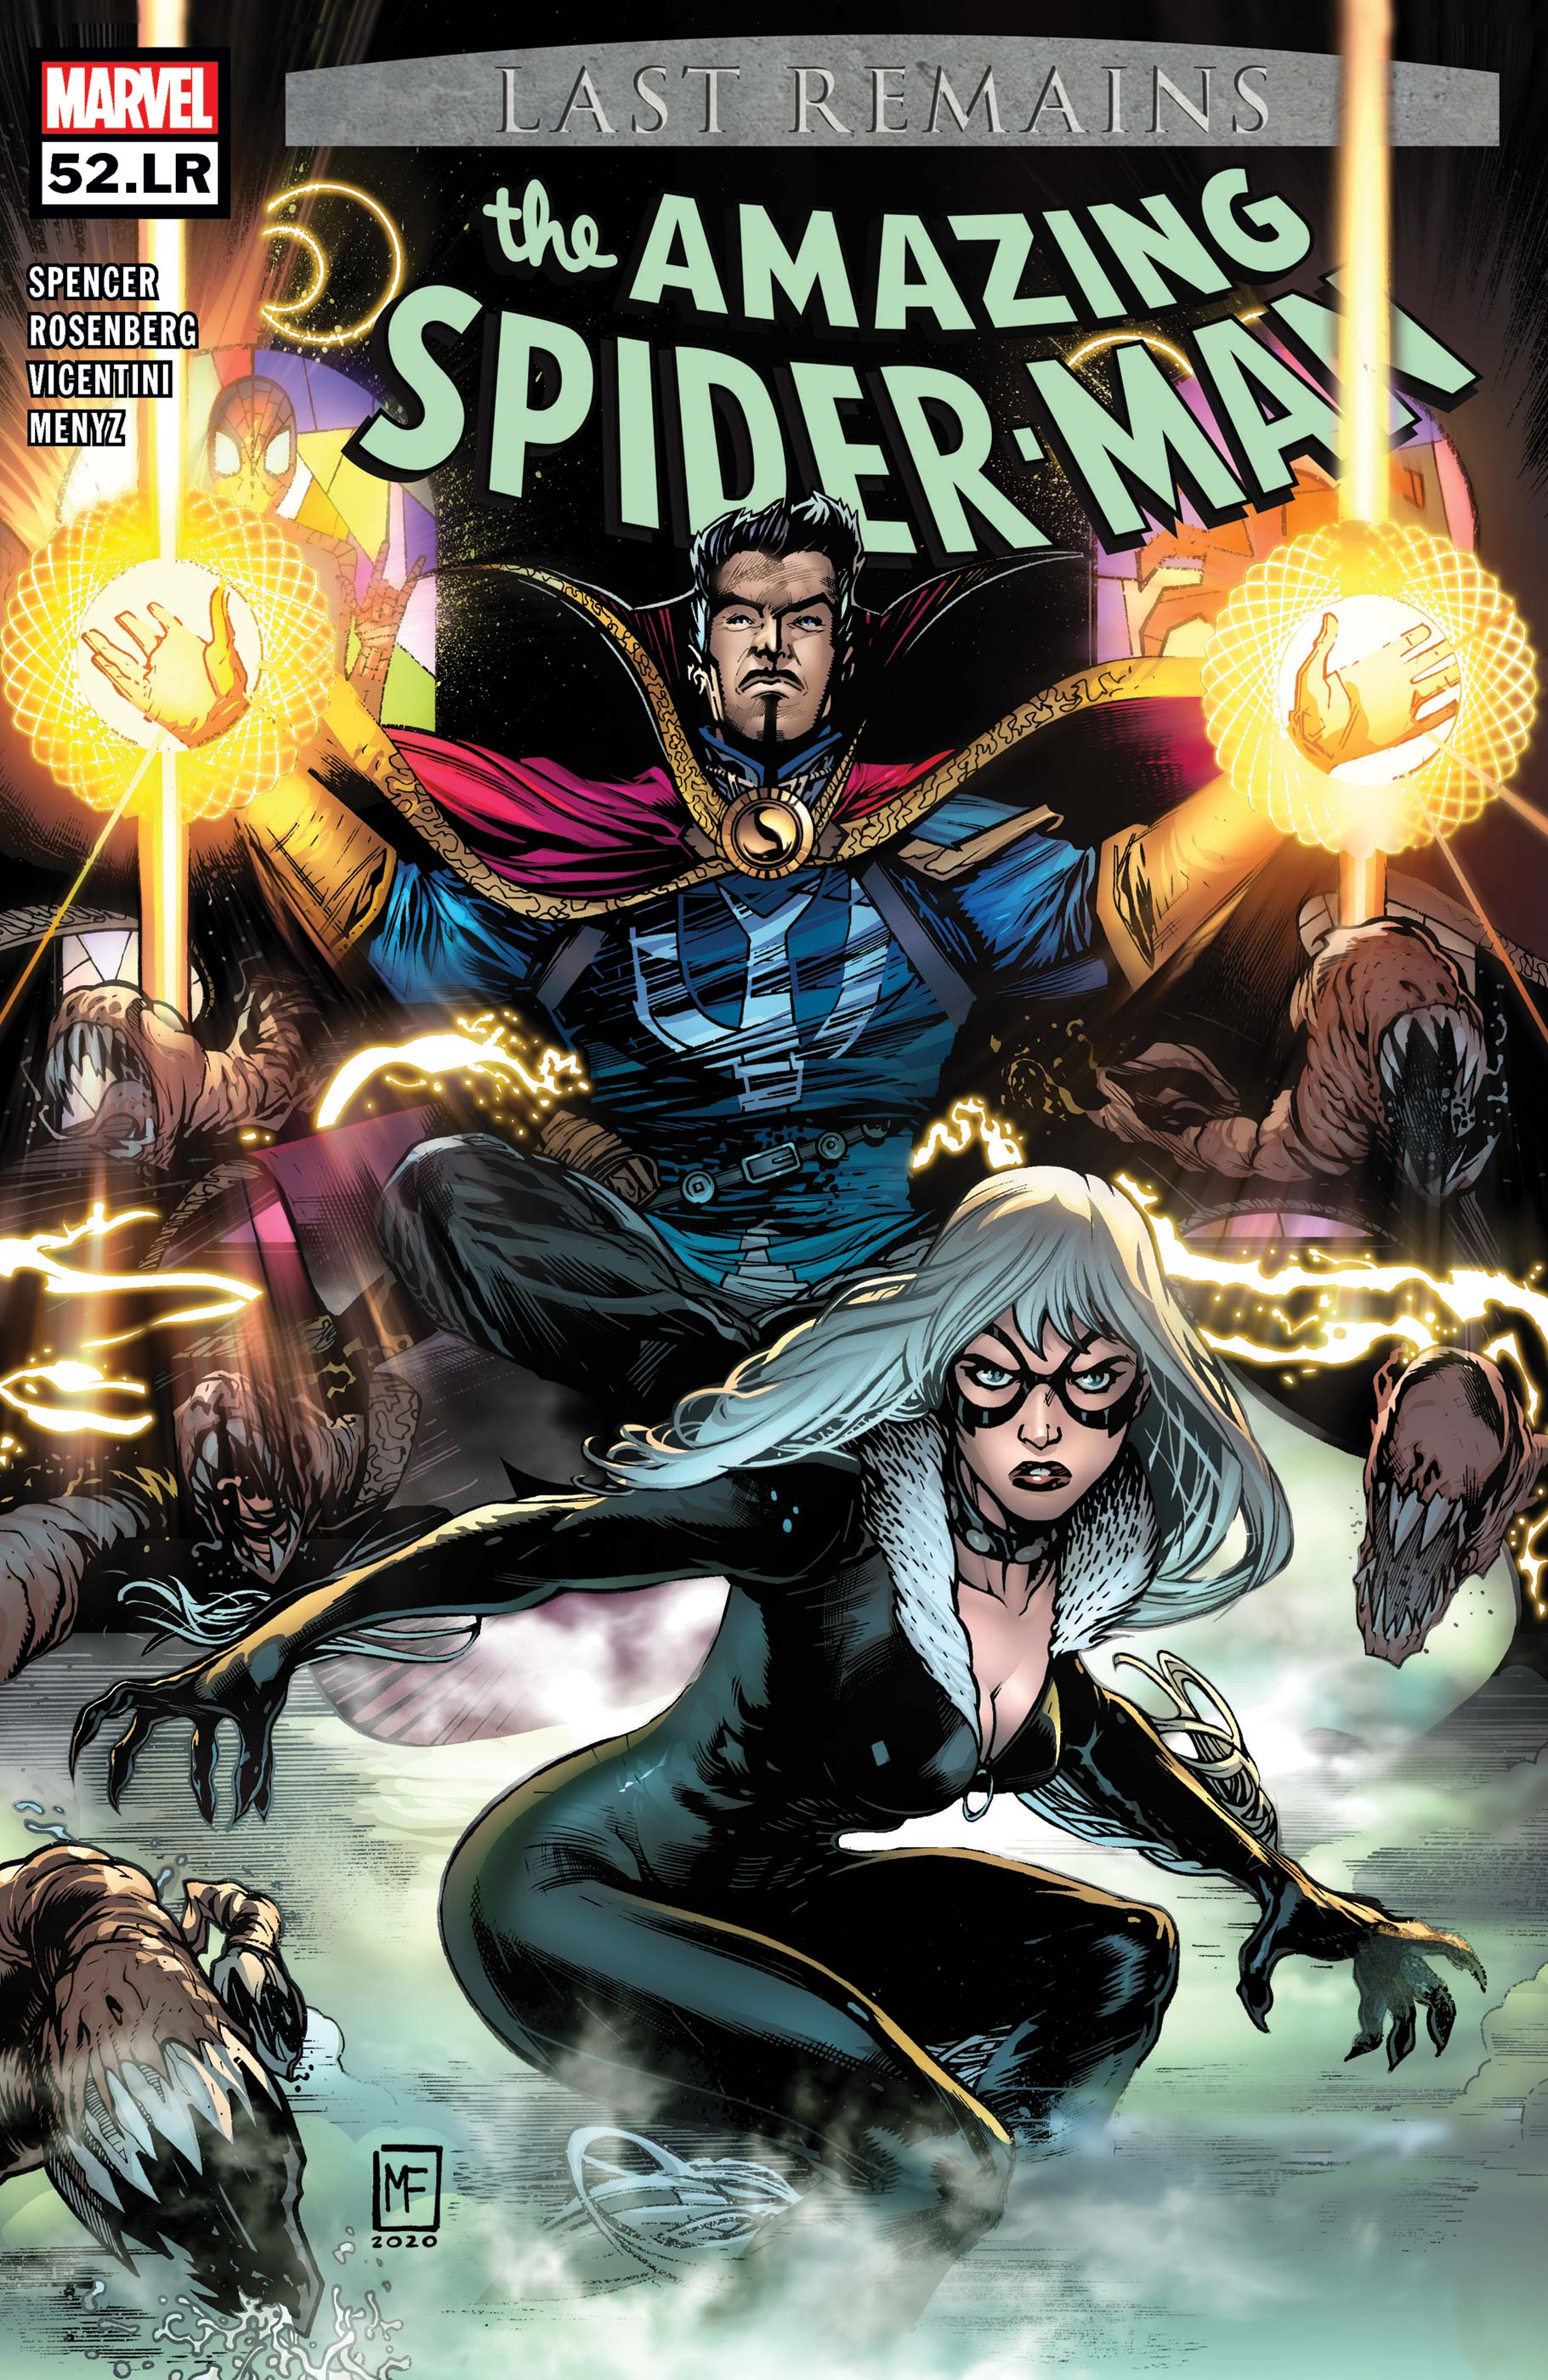 The Amazing Spider-Man (2018) #52.1